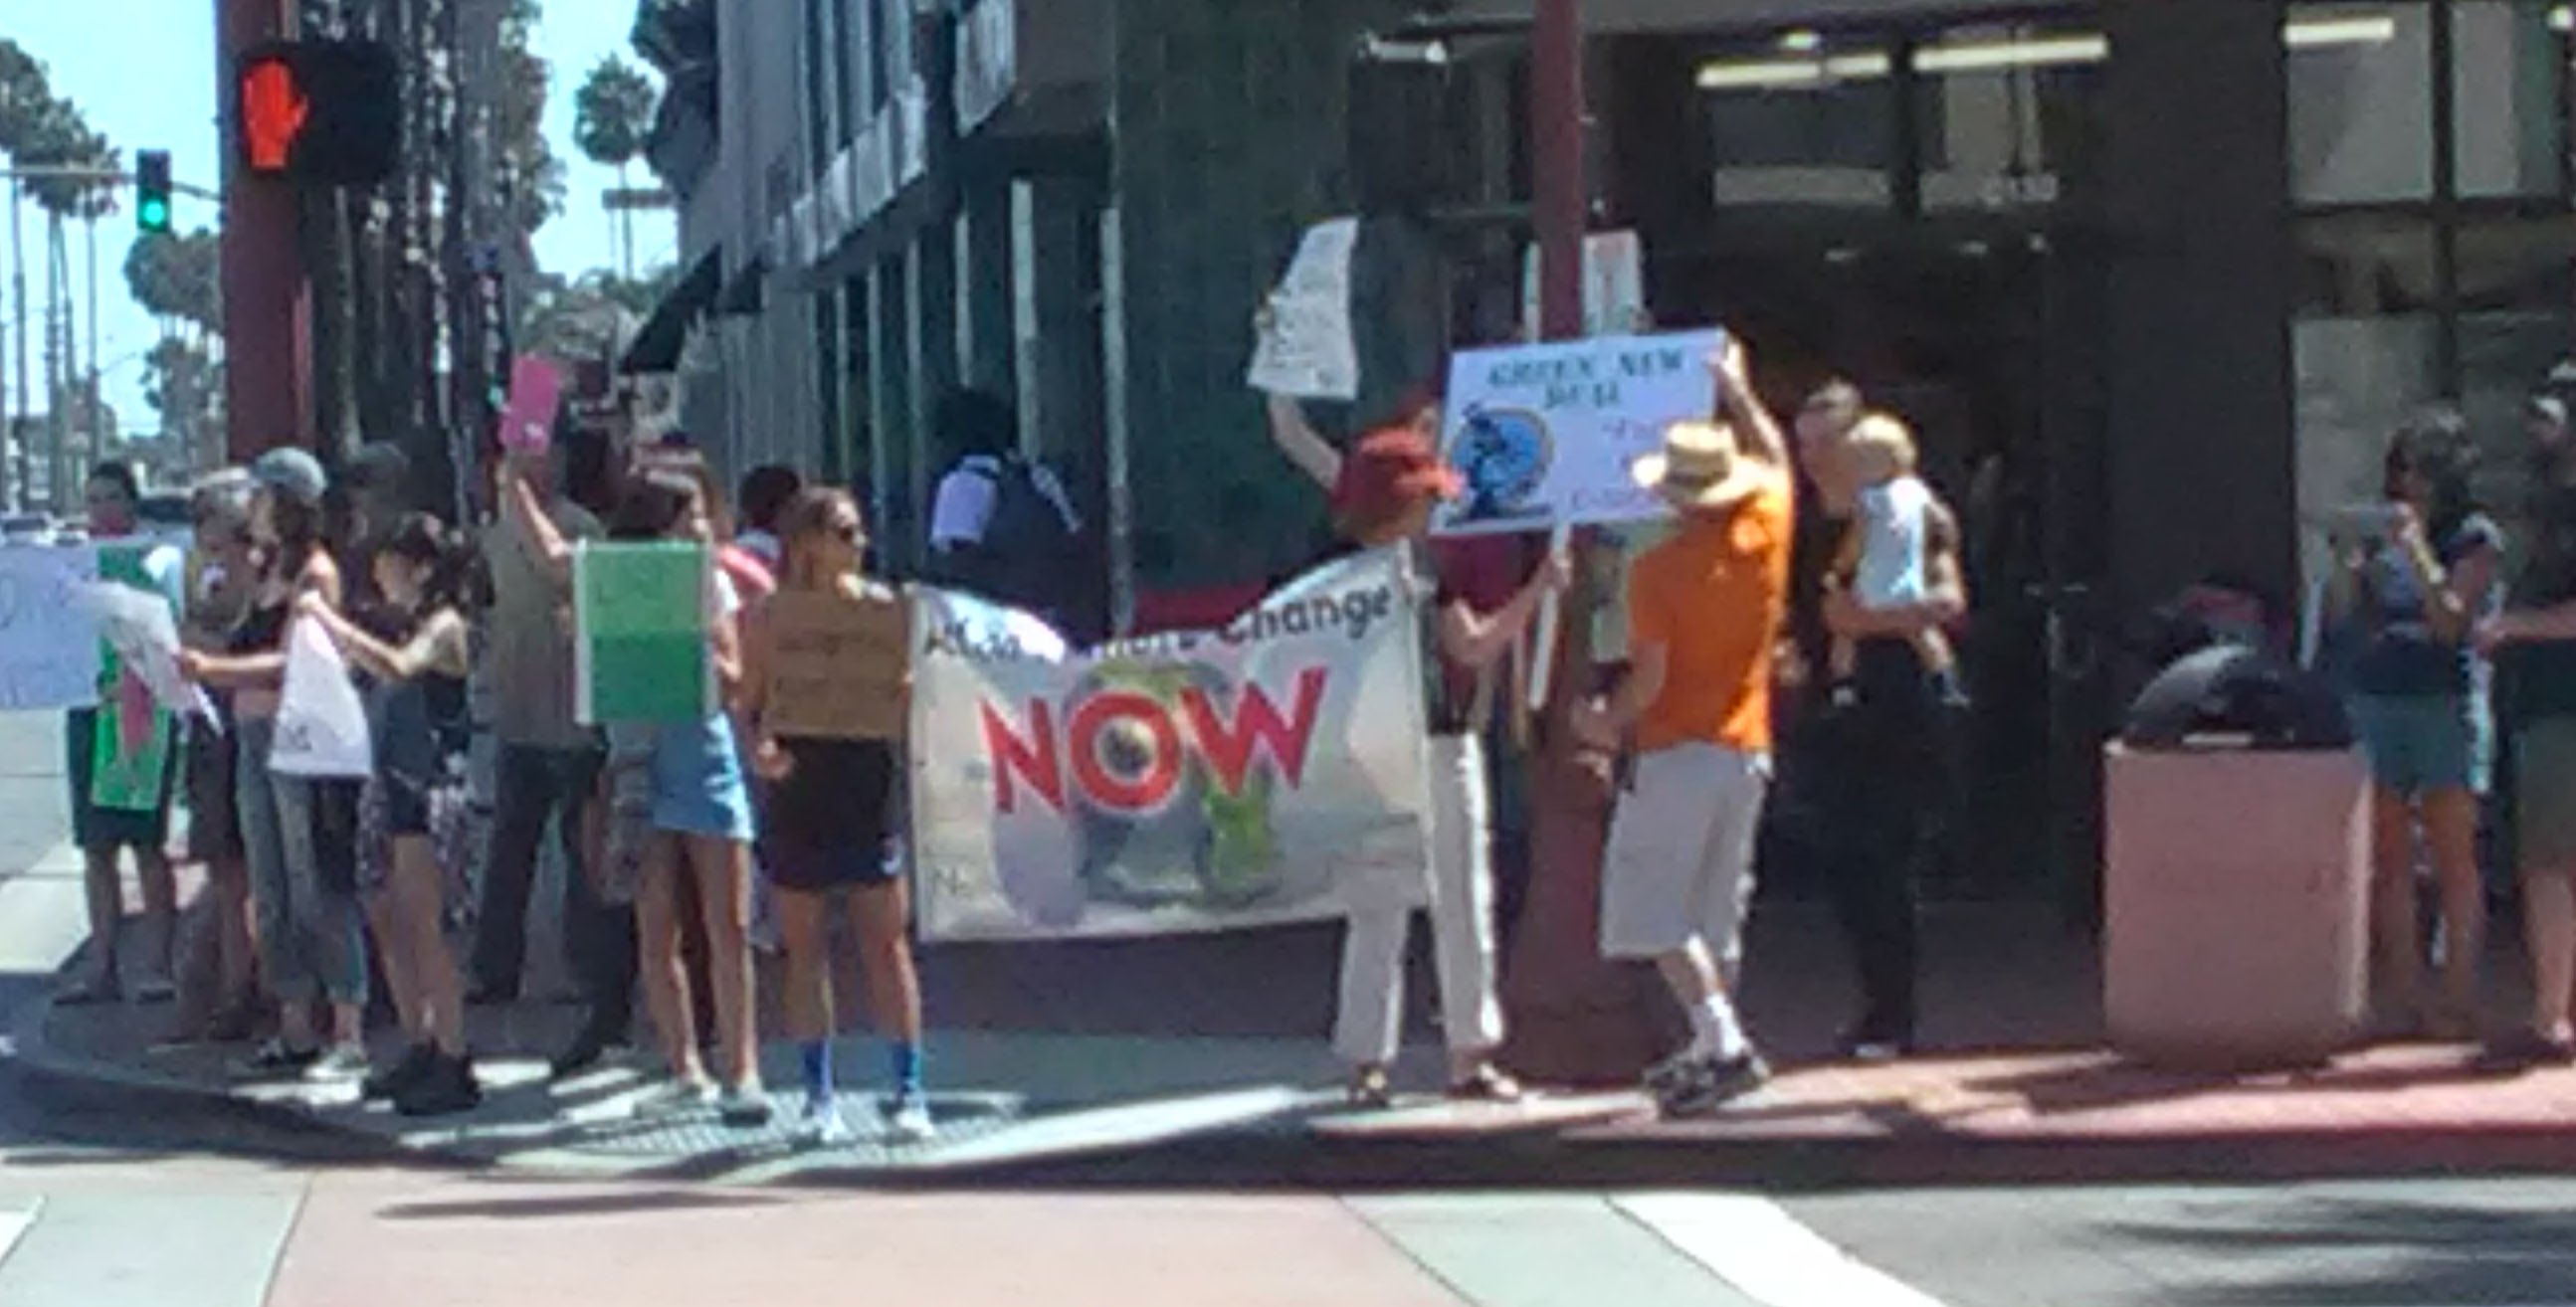 Climate Change Demonstrators